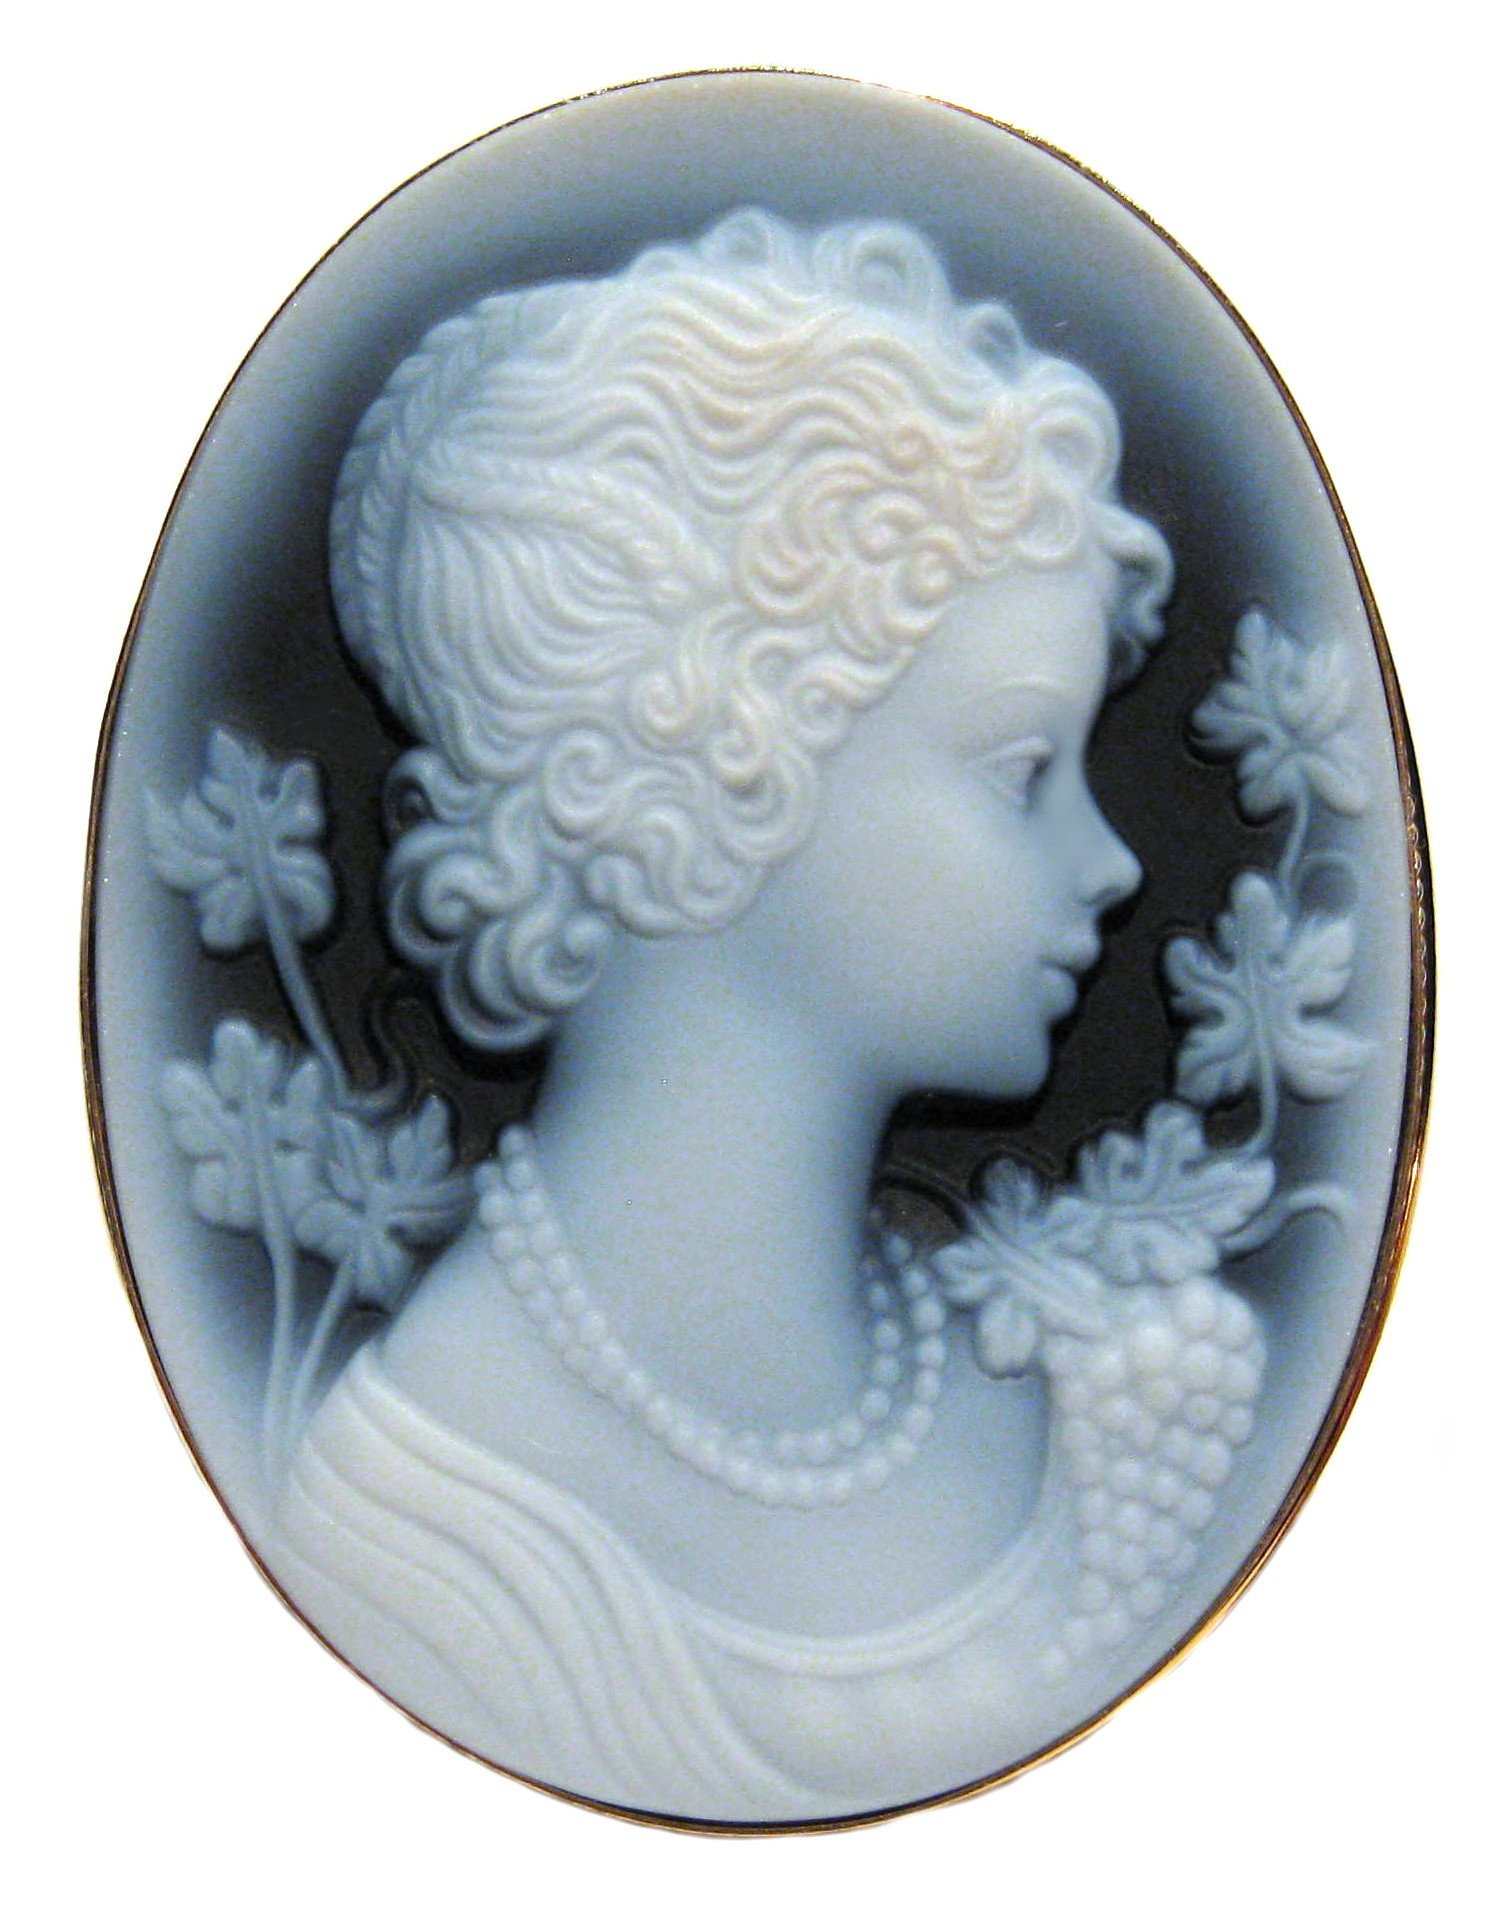 Summer Dream, Cameo Pin Pendant Genuine Agate Stone Laser Carved Italian Sterling Silver 18k Gold Overlay